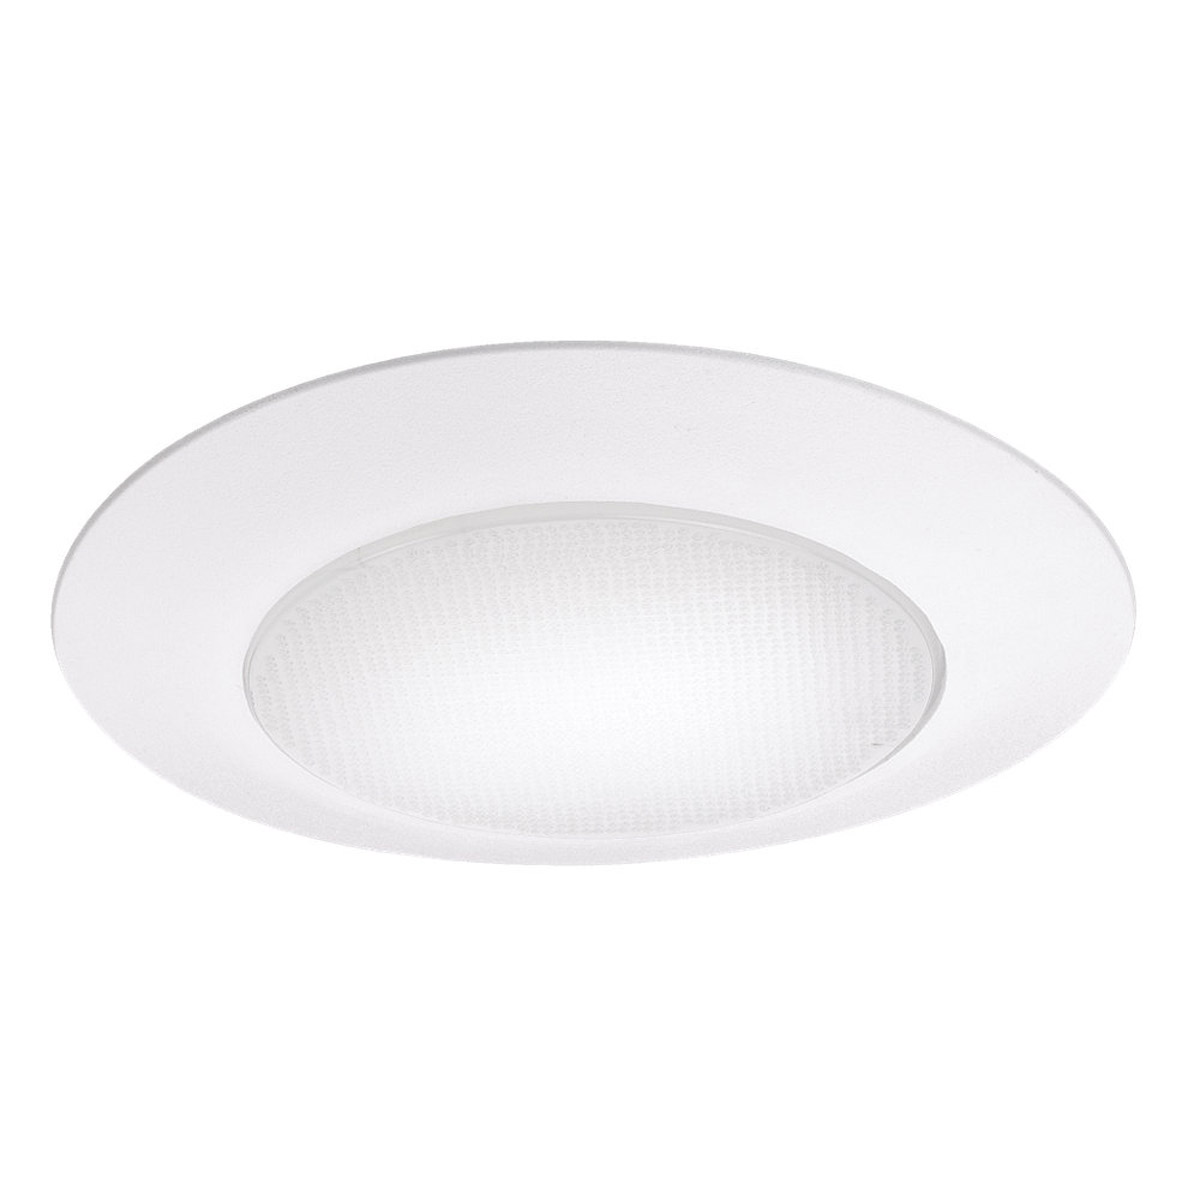 Sea Gull Lighting Signature Recessed Trim Only in White 11233AT-15 photo